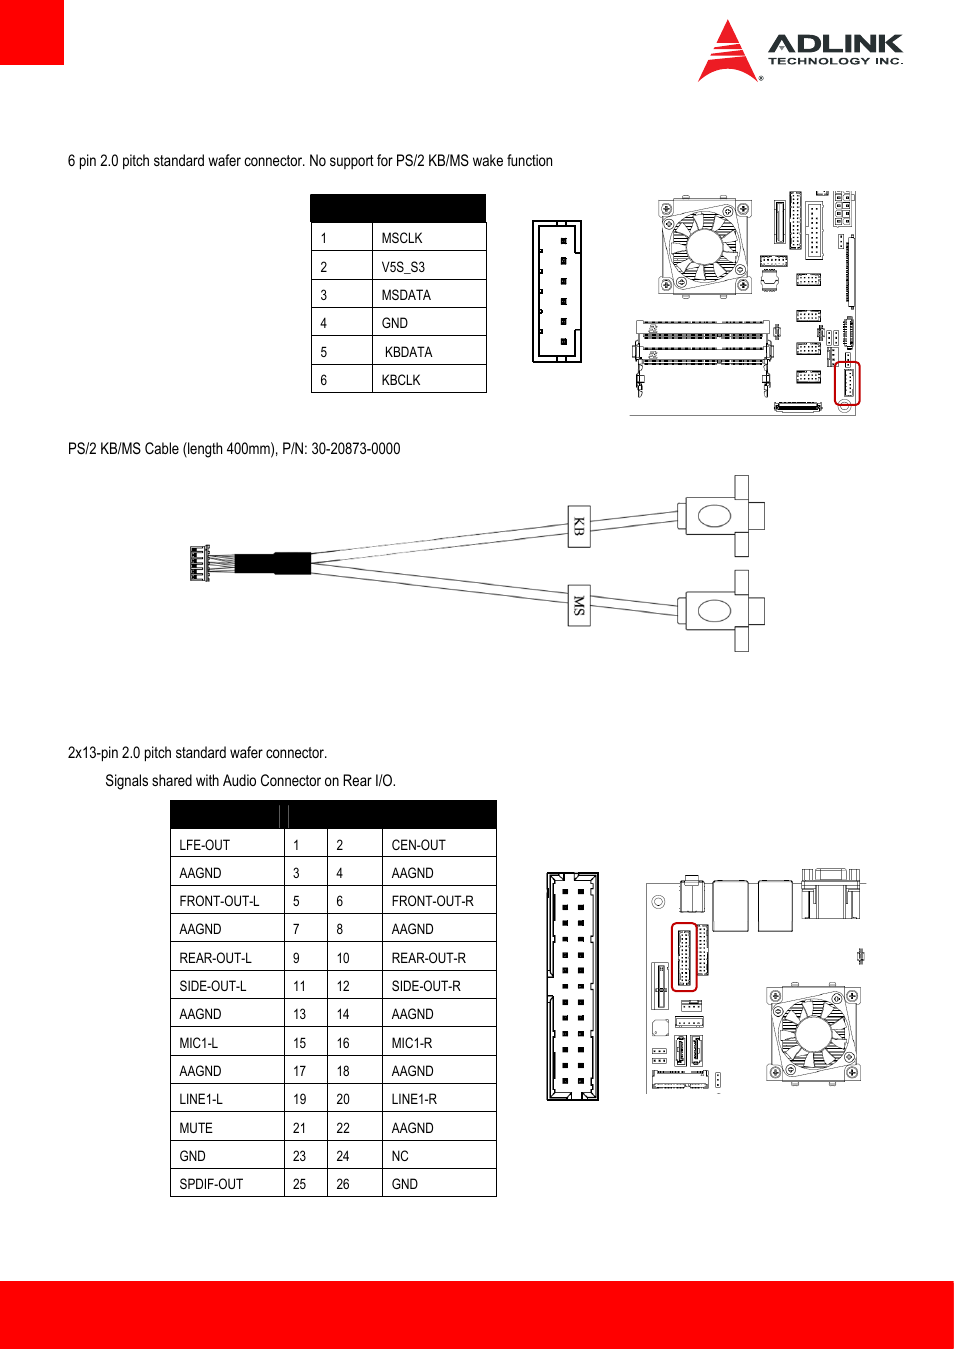 Ps 2 Keyboard And Mouse Connector Internal Audio Adlink Wiring Diagram Amitx Bt I User Manual Page 24 48